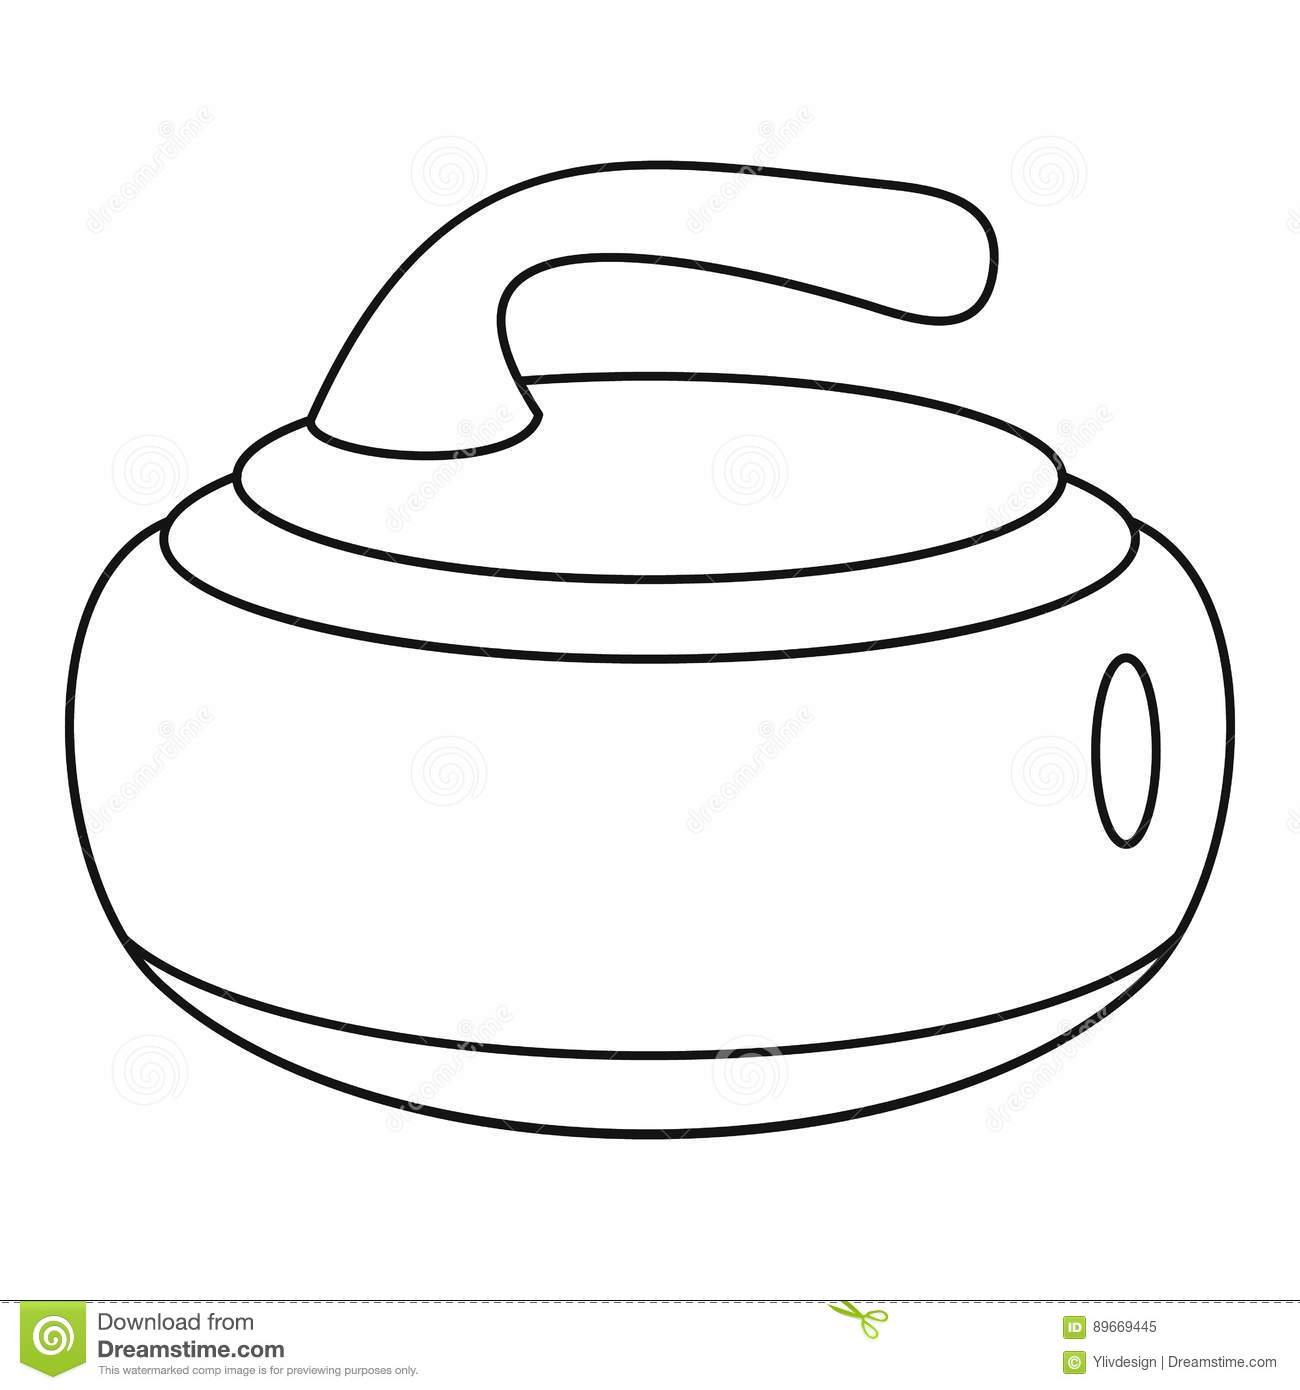 Curling Stone On A Game Sheet Stock Photo Cartoondealer